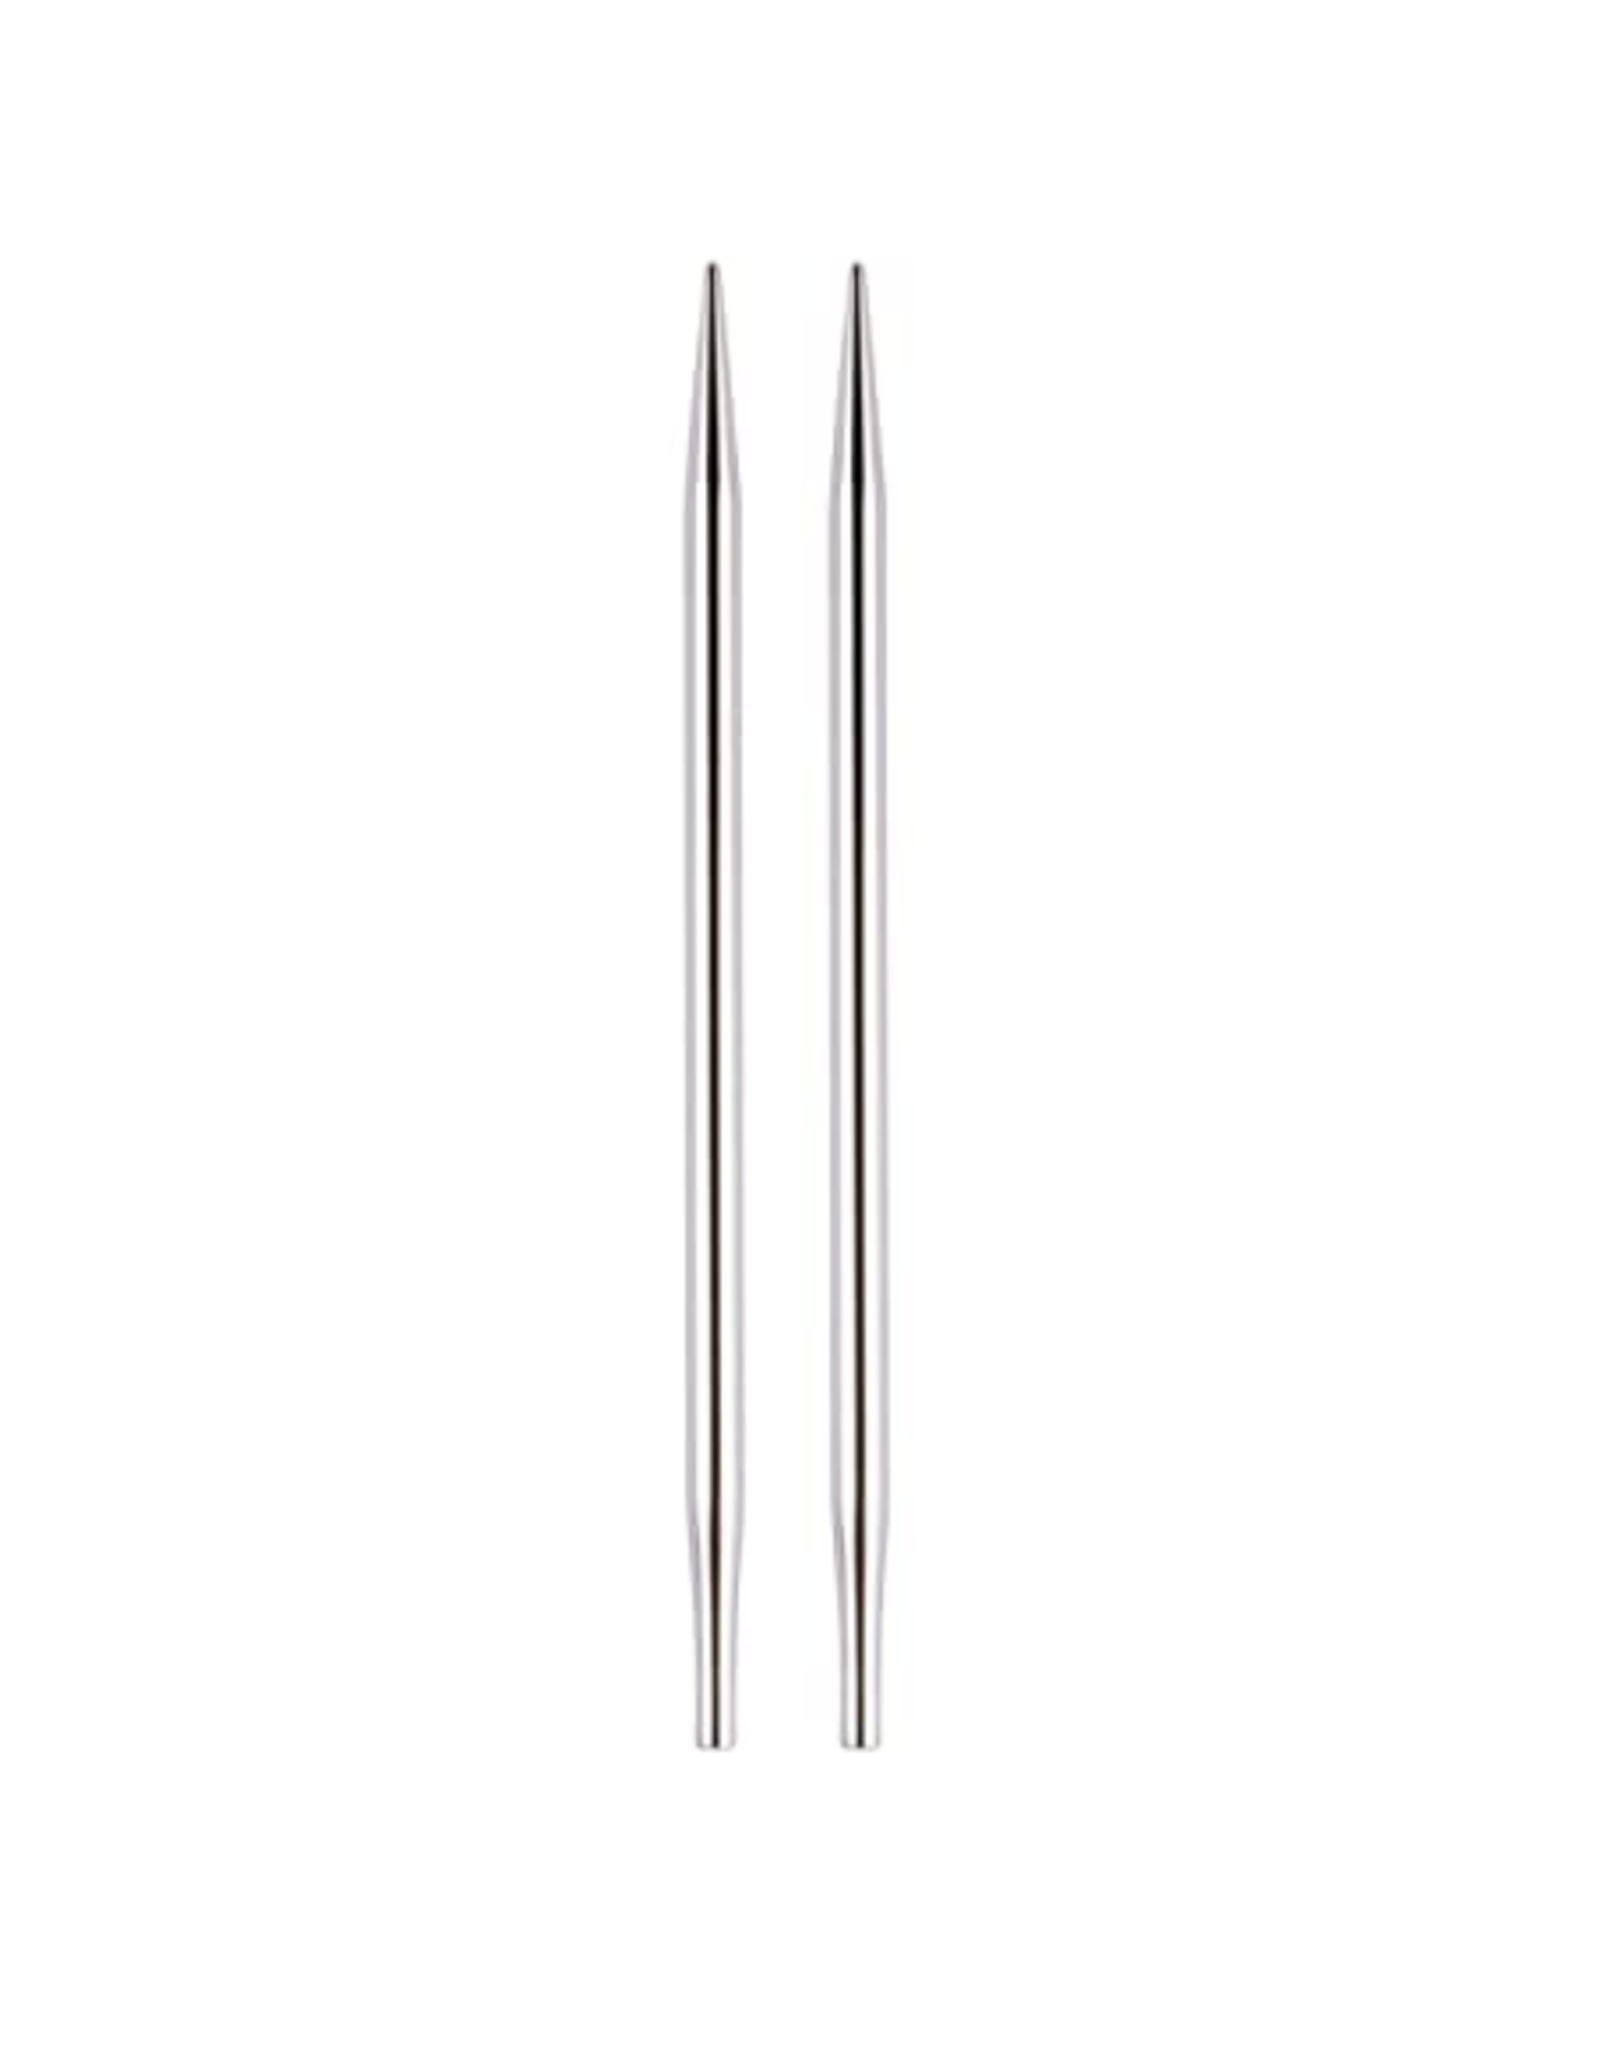 "Nova size US 7 interchangeable needle tips for 24"" cords and up."